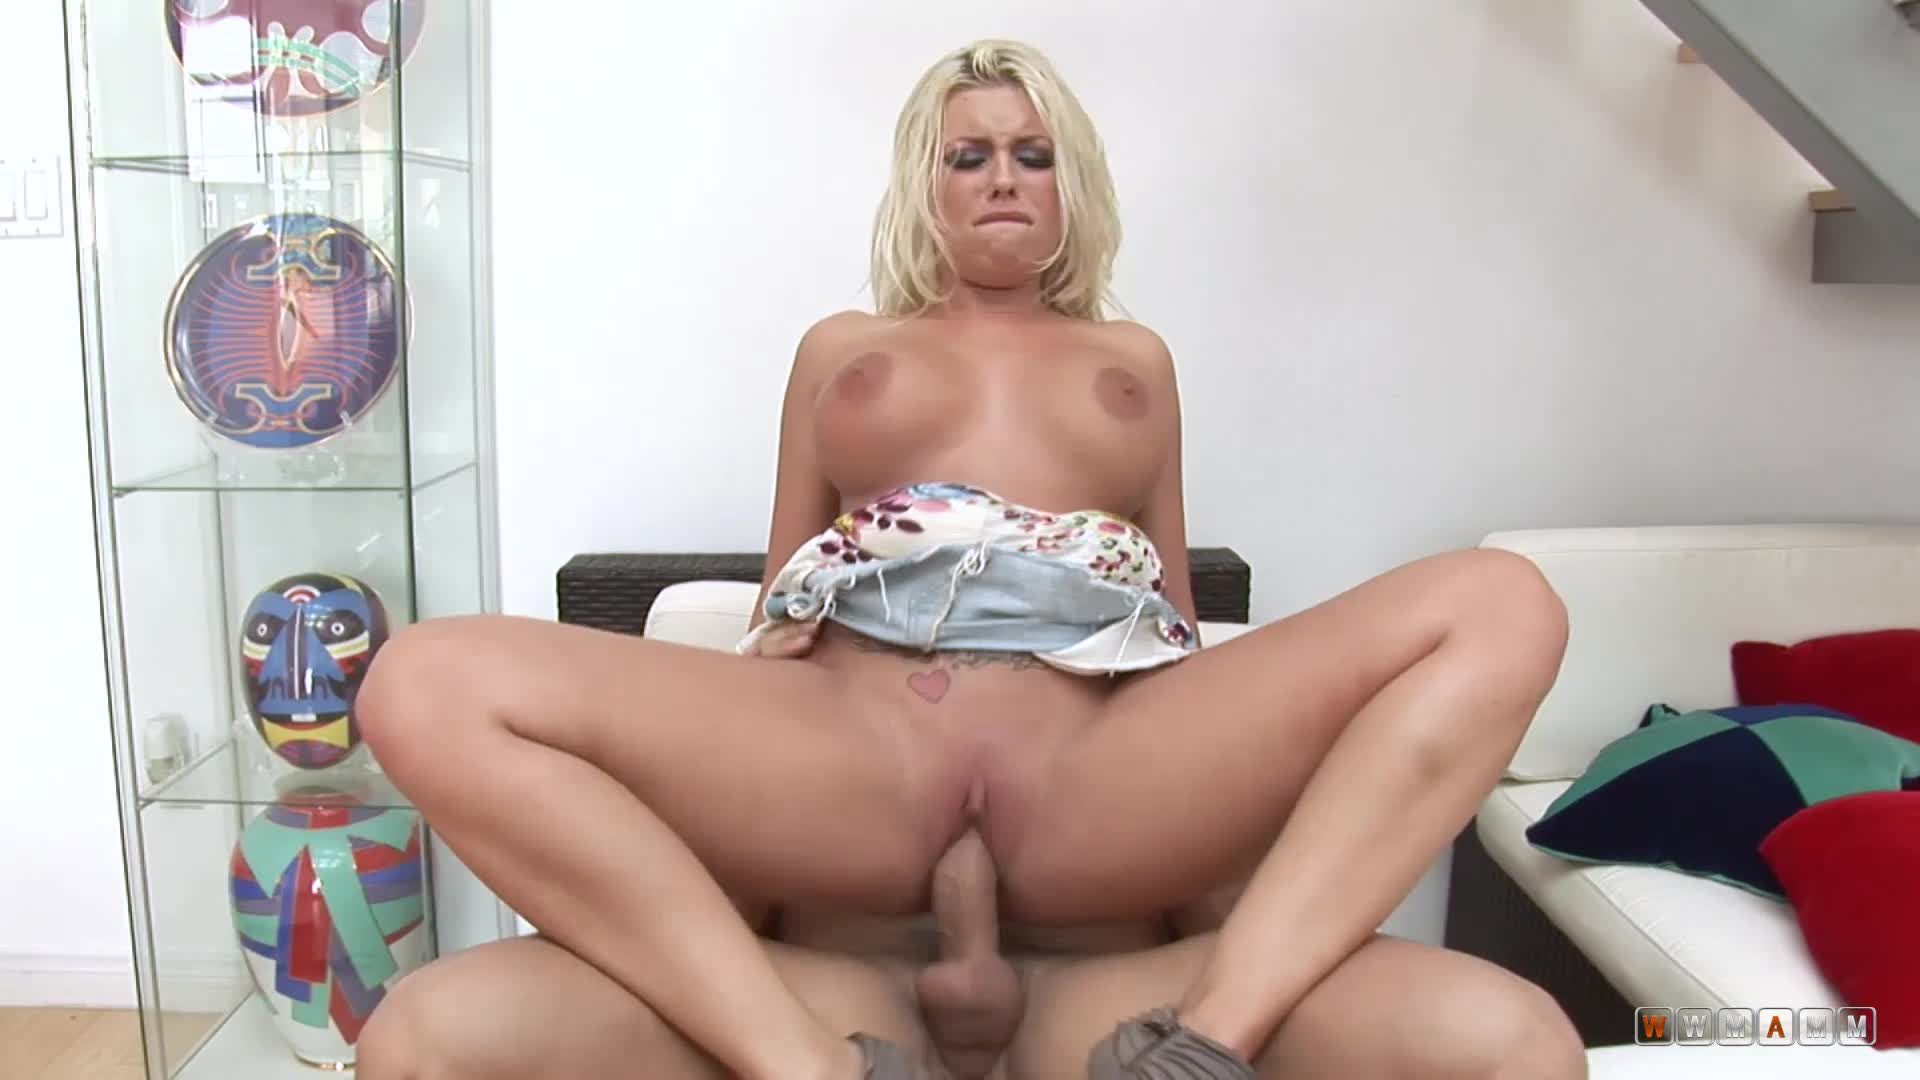 Slutty And Horny Blondie Daughter Will Get Fucked By Her Stepdad